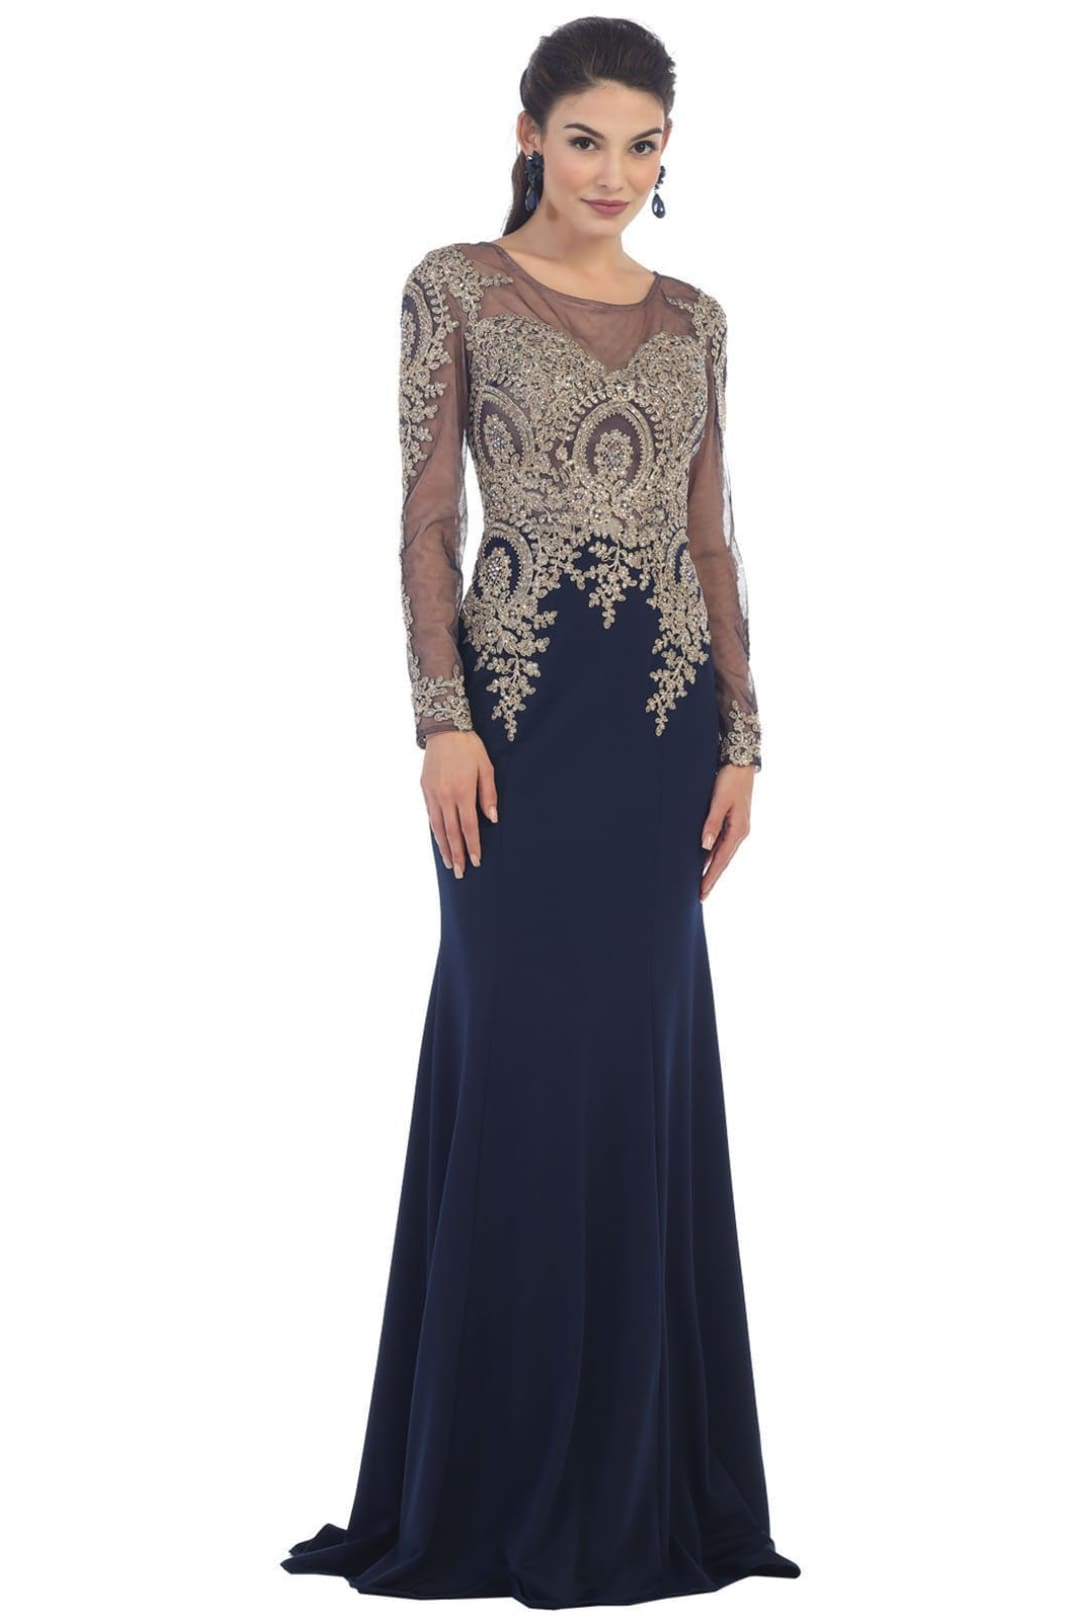 Magnificent Evening Dress for all Ages - Navy / 6